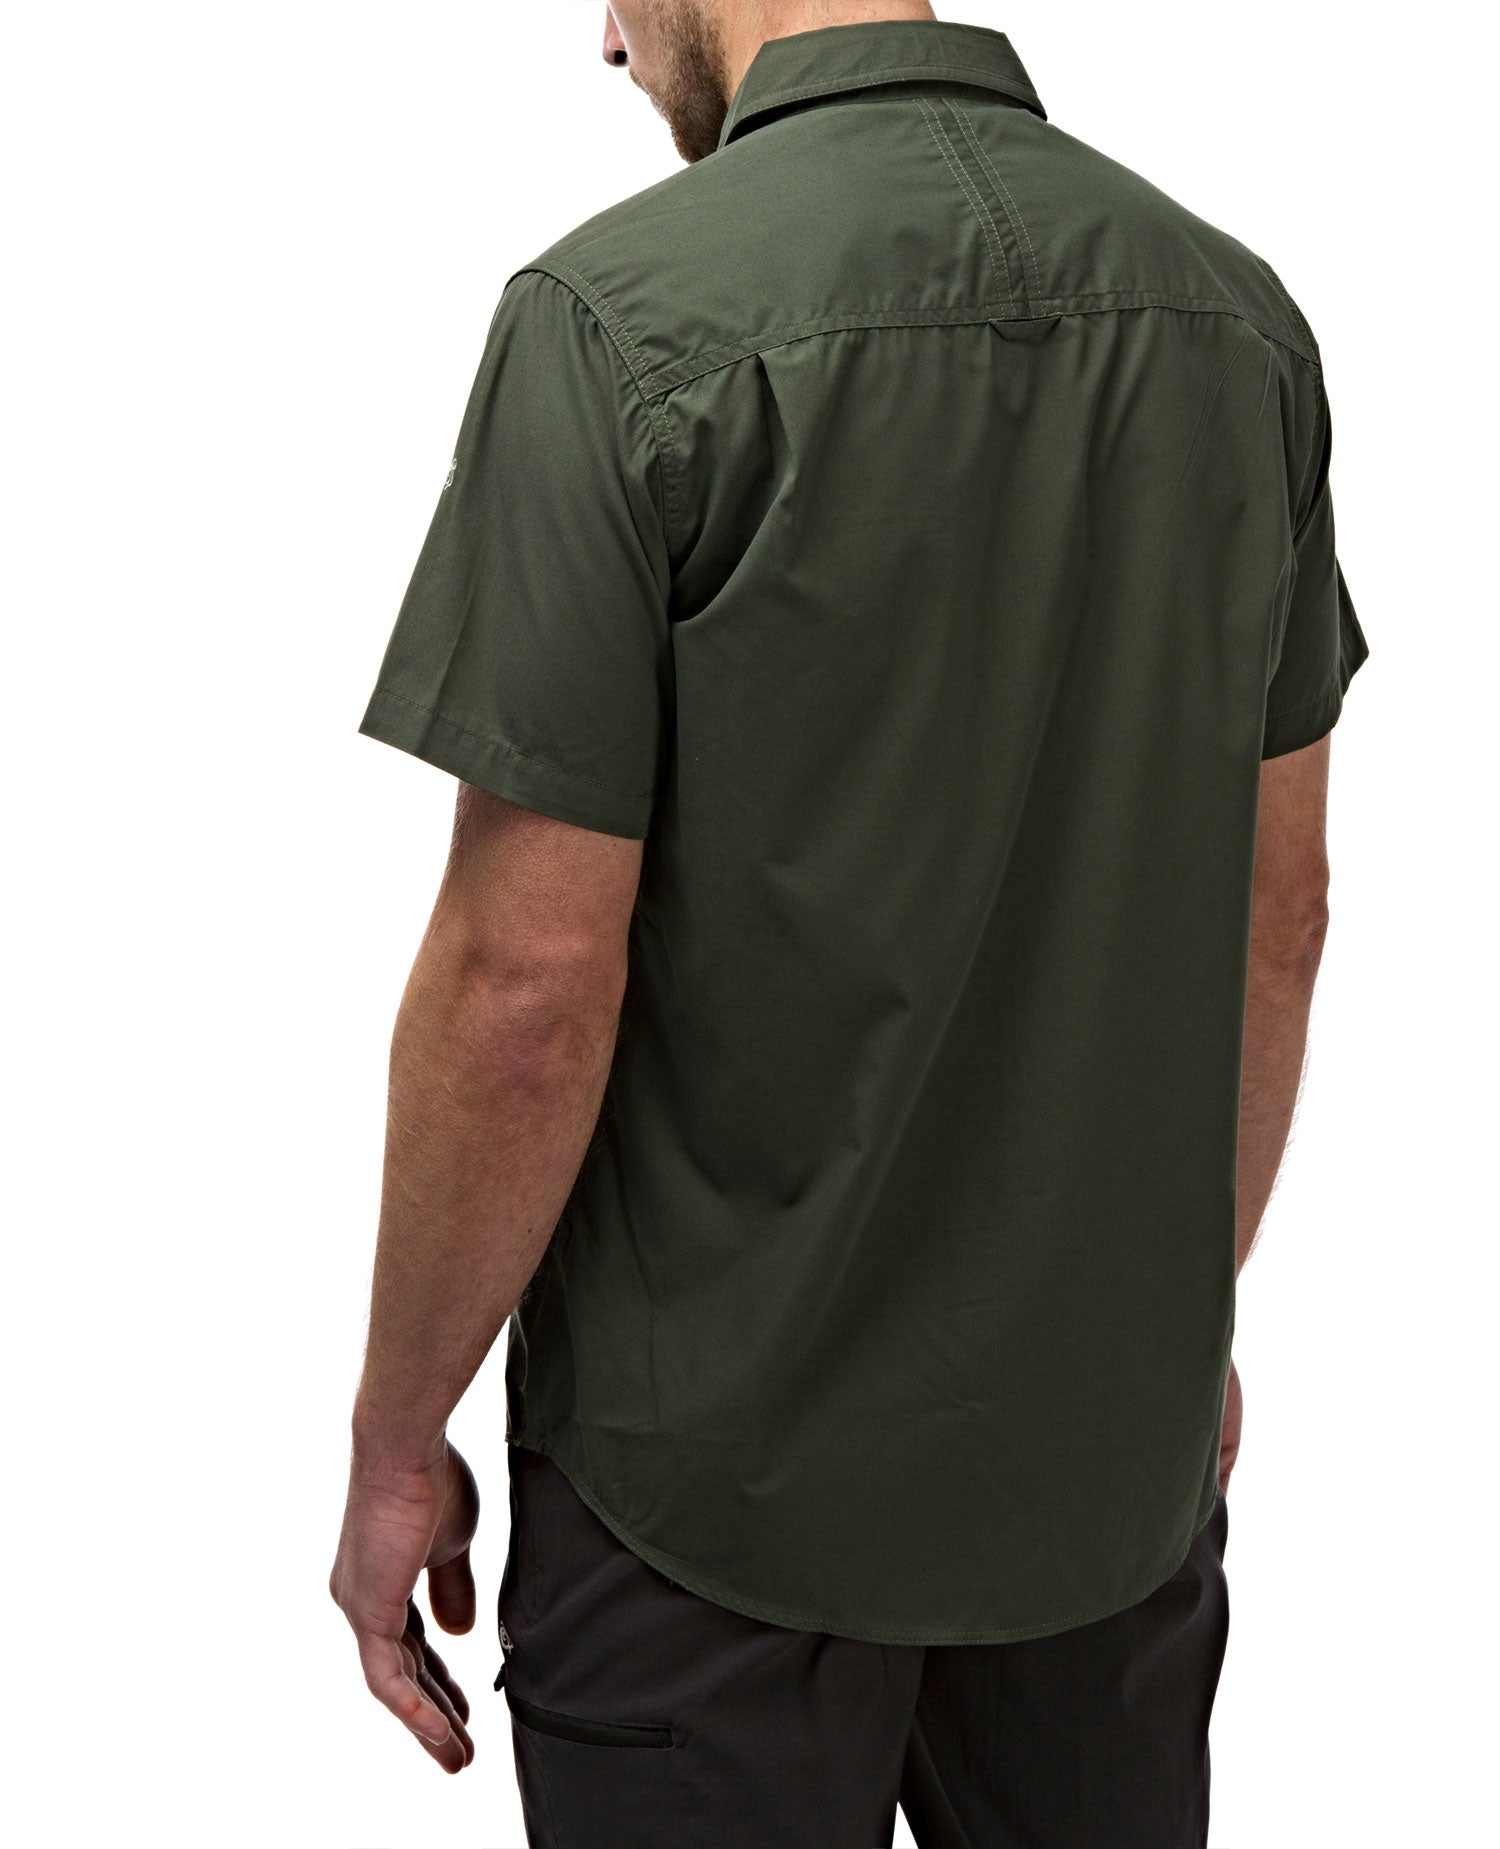 rear view Cedar GreenCedar green Man's Bush shirt with short sleeves